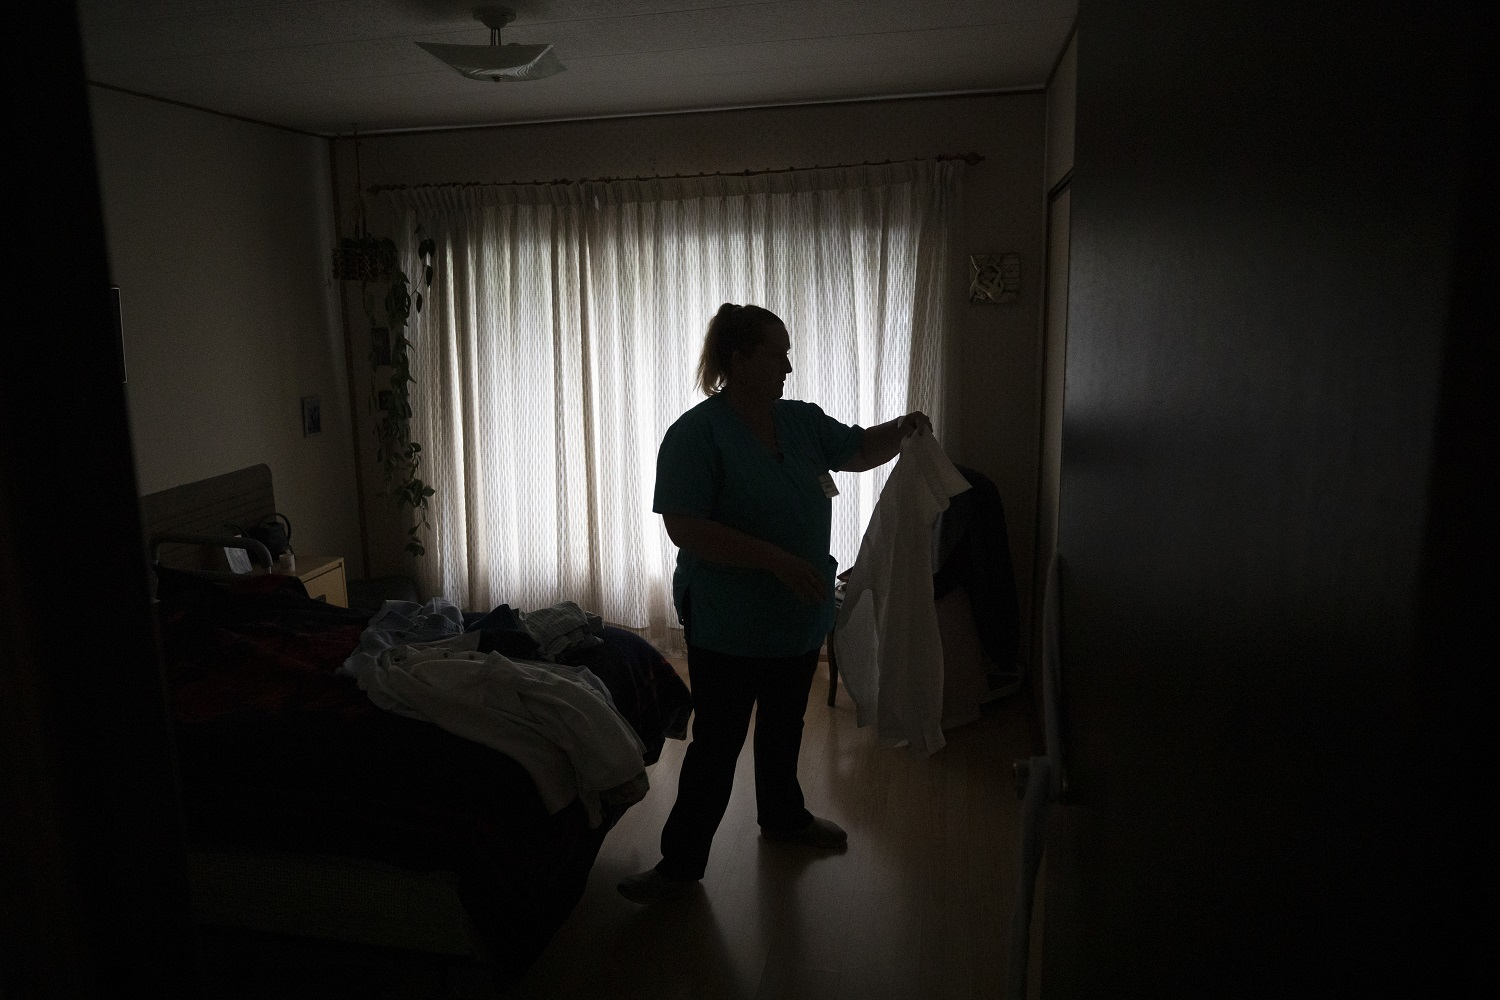 Care worker Jenny Kaastra works until late, with her shift totaling 12 hours. (Ben Nelms/CBC)